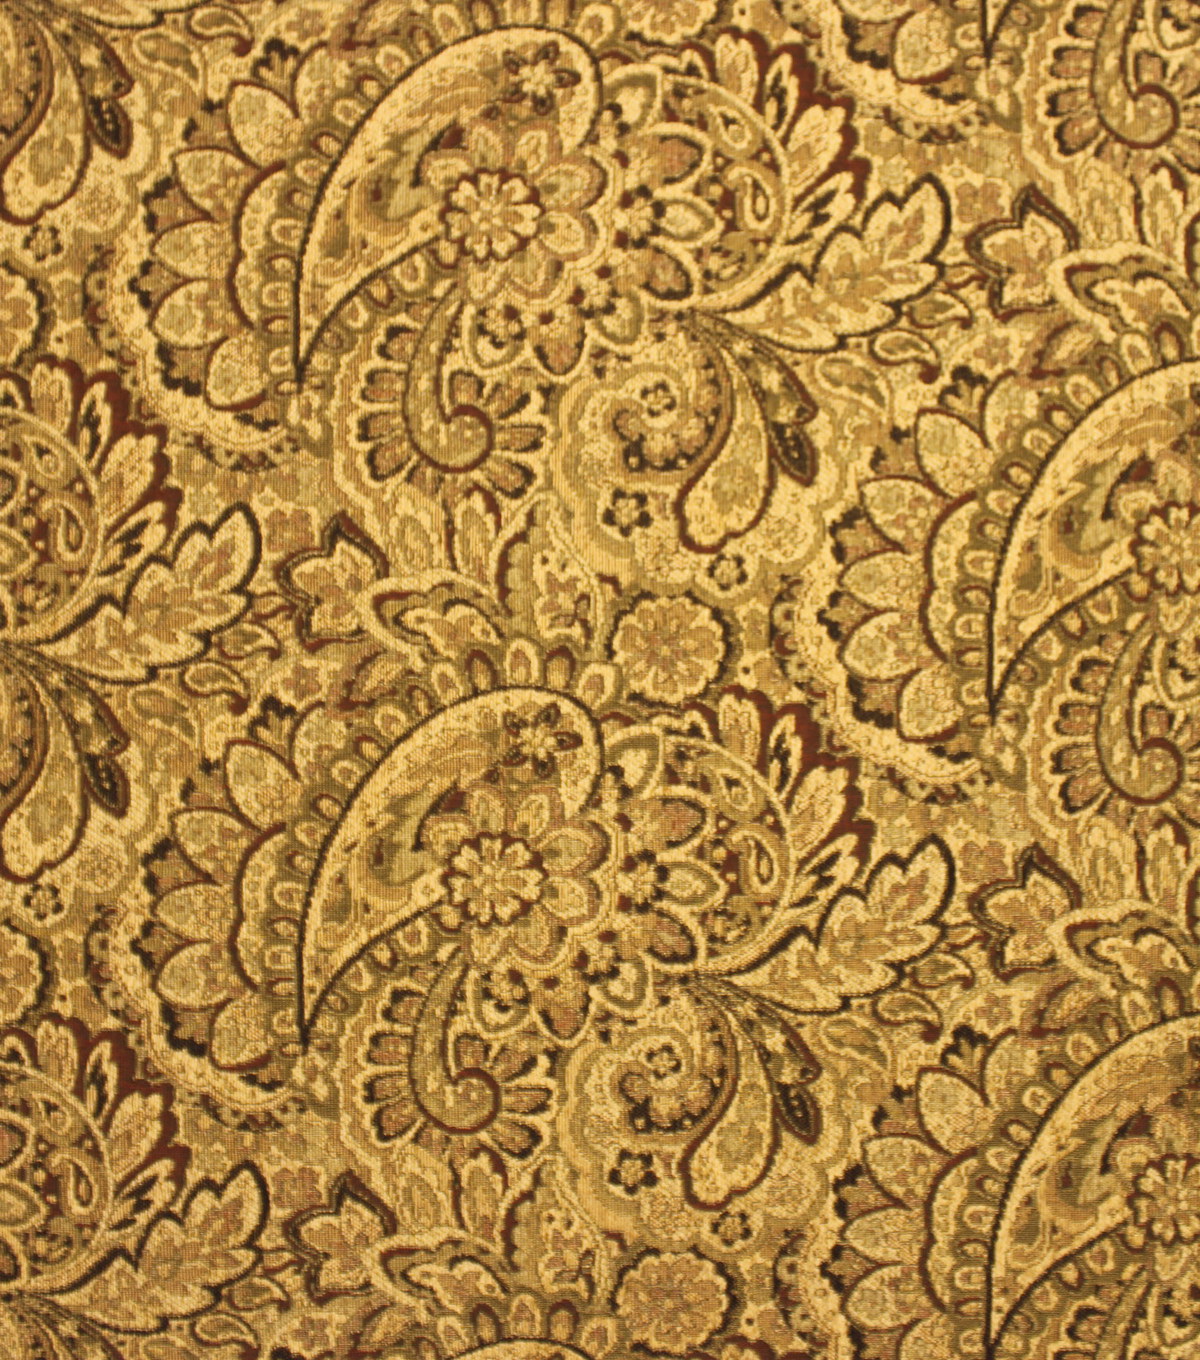 Home Decor 8\u0022x8\u0022 Fabric Swatch-Upholstery Fabric Barrow M6101-5399 Treasure